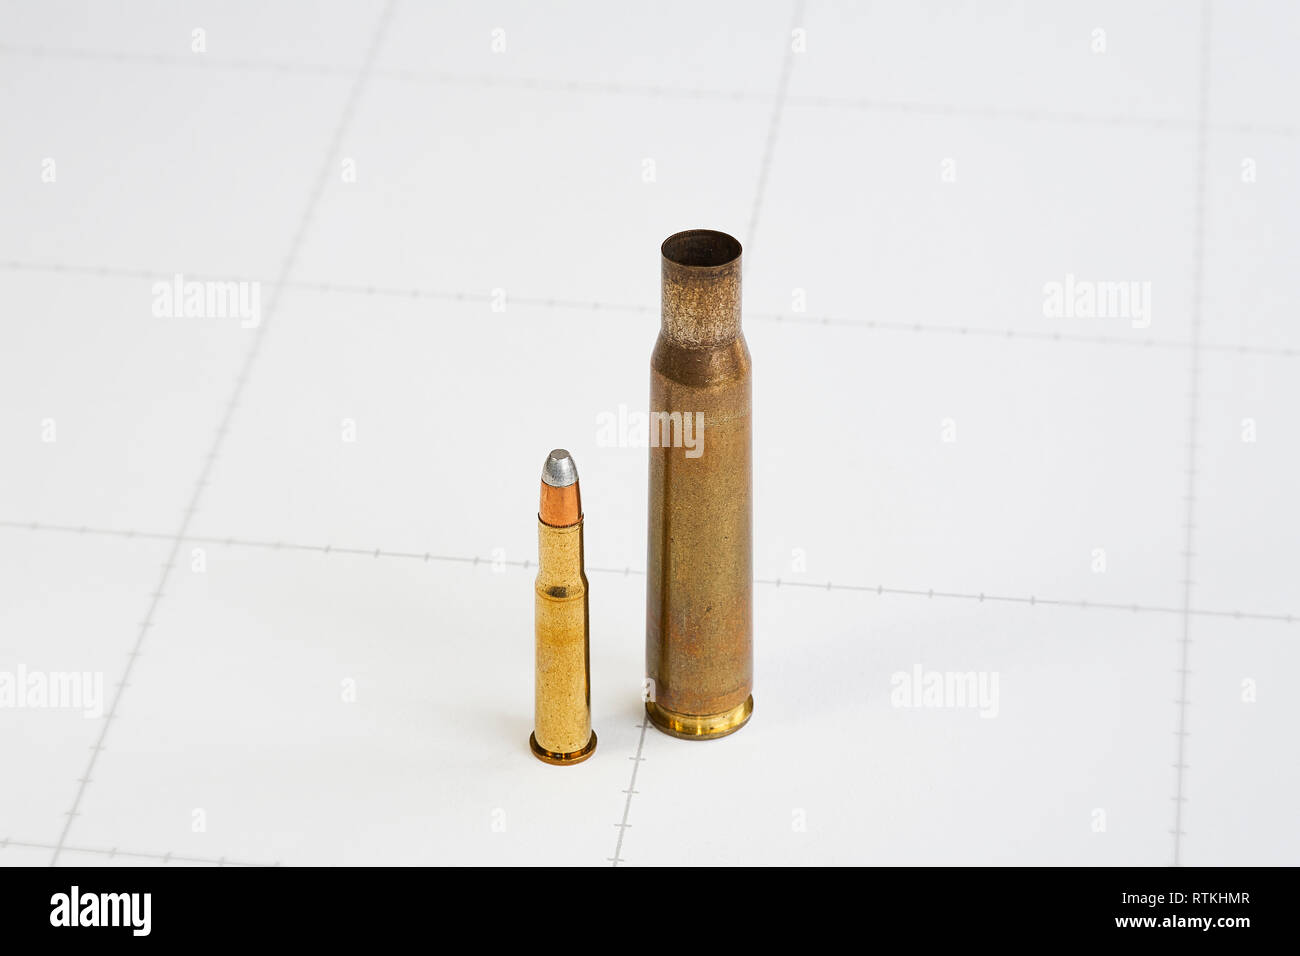 The .30-30 Winchester/.30 Winchester Centre Fire (7.62×51mmR) cartridge was first marketed in 1895 for the Winchester Model 1894 lever-action rifle. - Stock Image